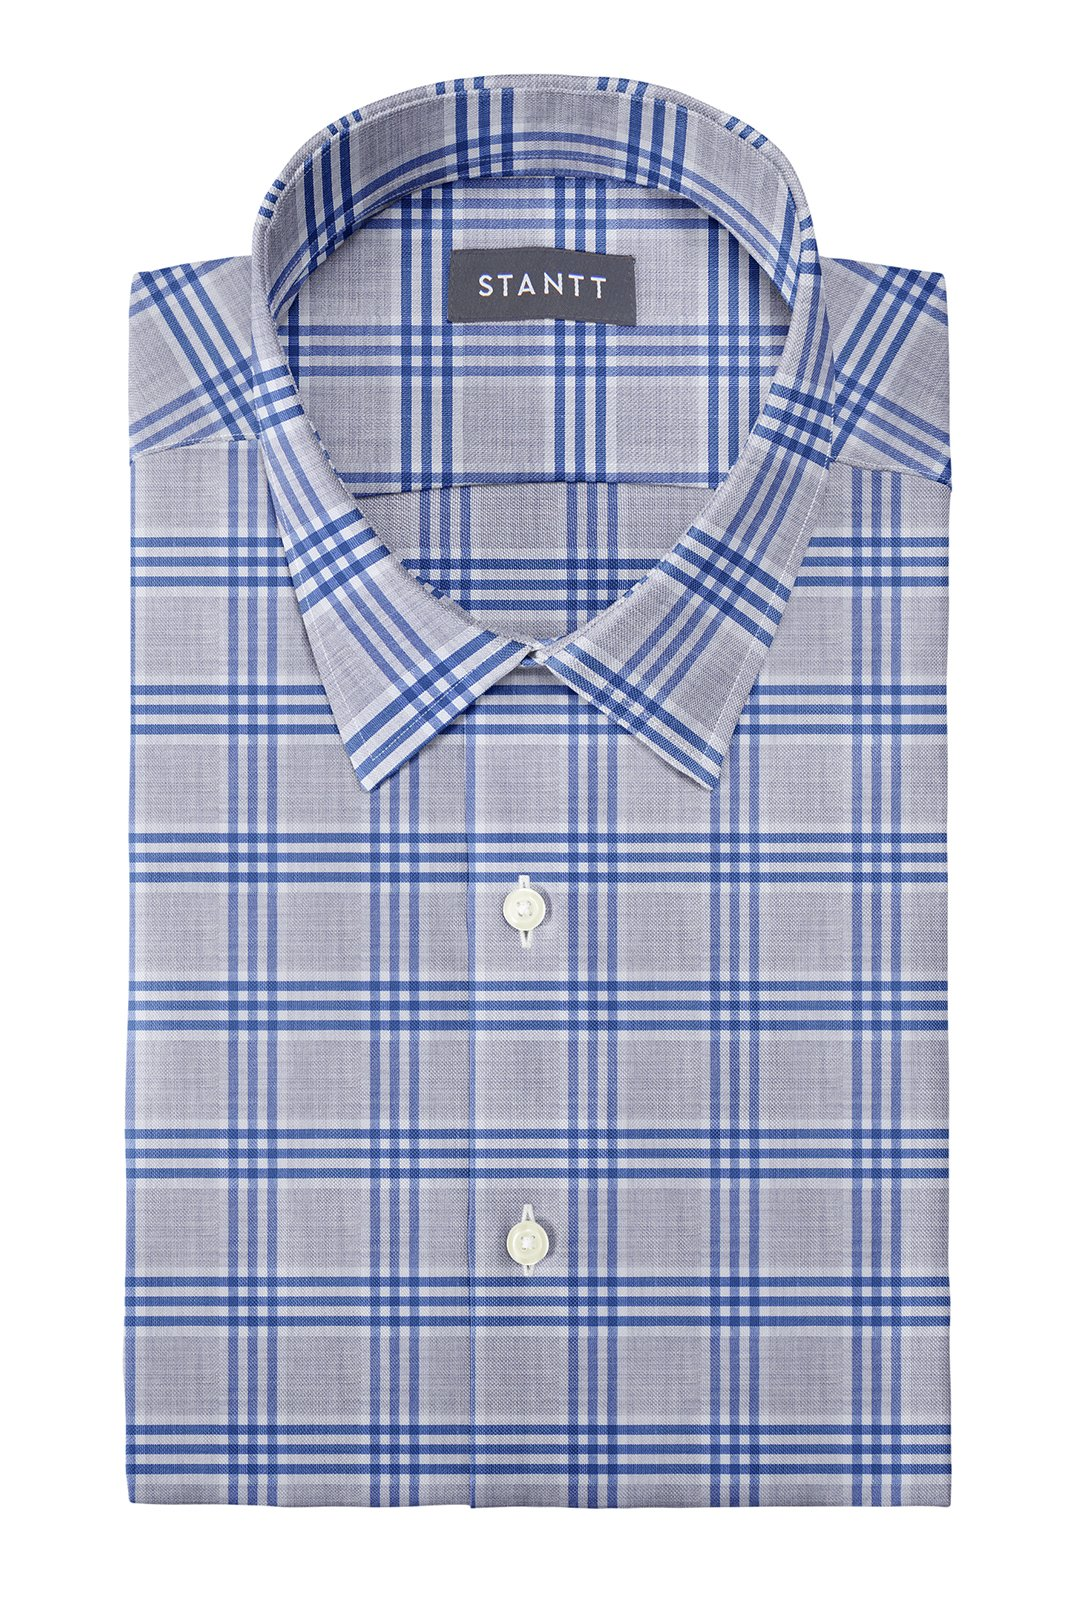 Melange Grey and Blue Box Check: Semi-Spread Collar, Barrel Cuff